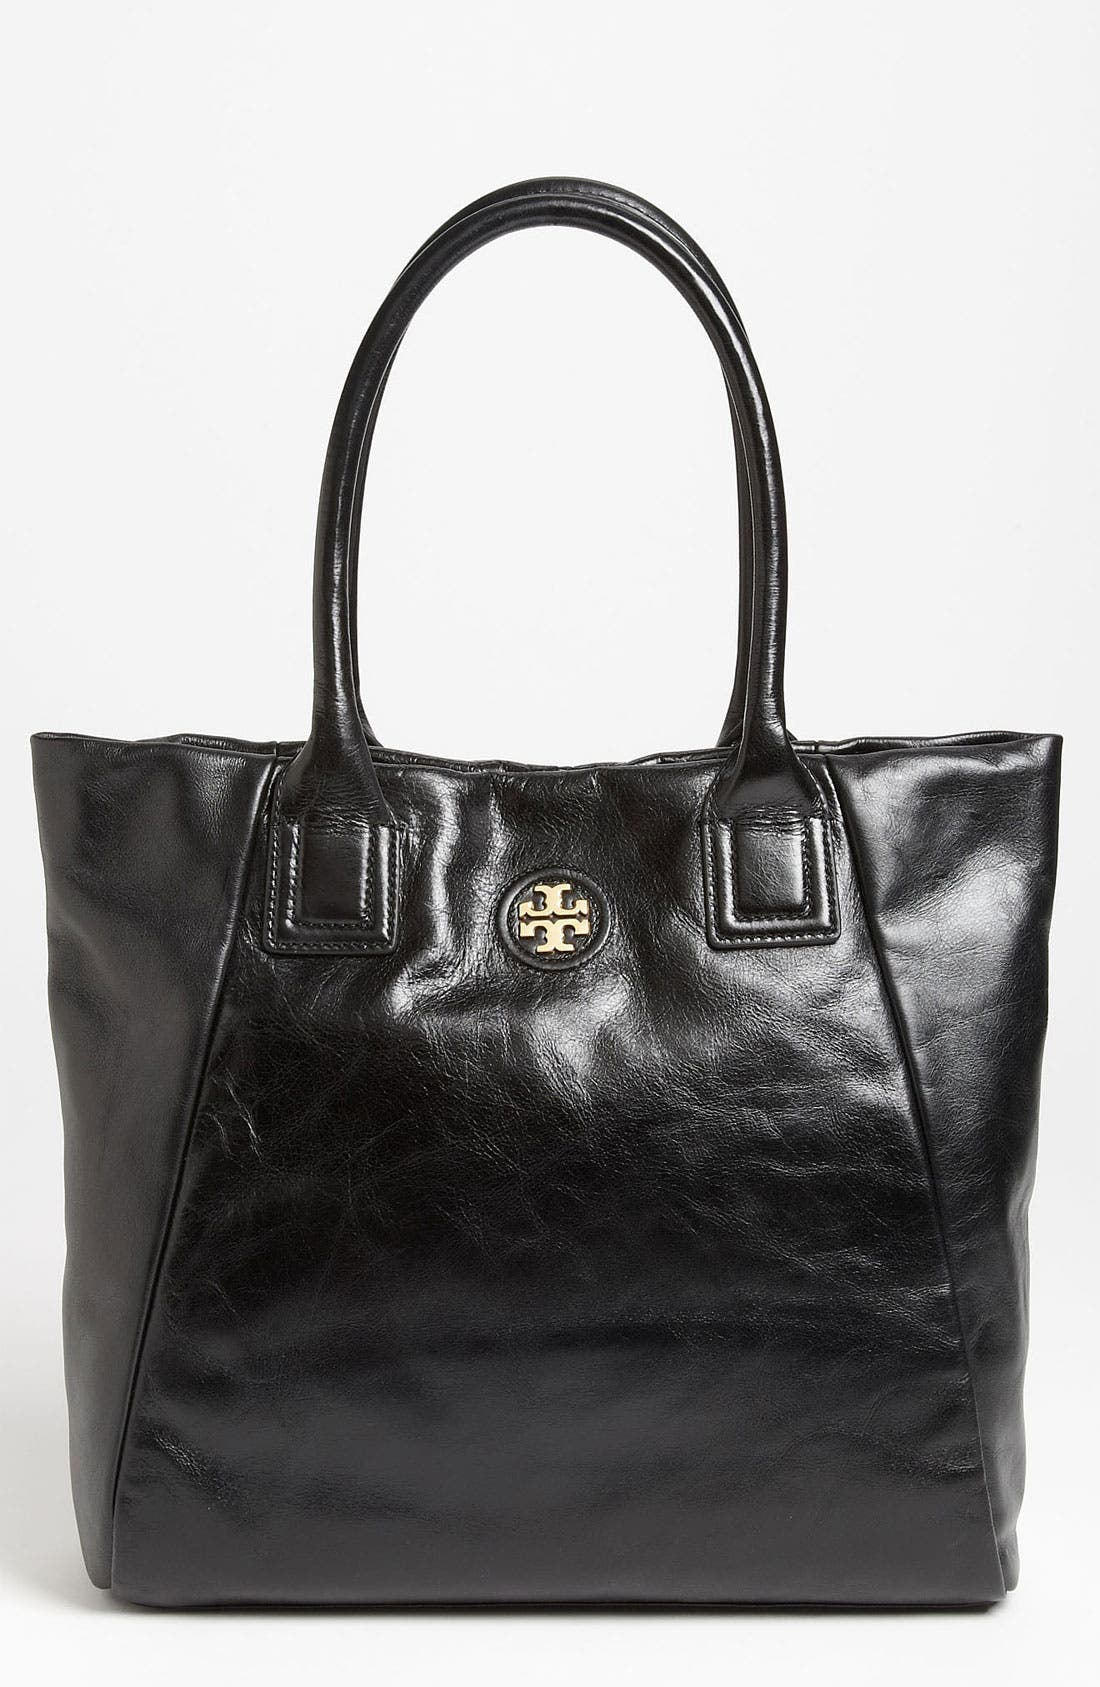 Alternate Image 1 Selected - Tory Burch 'City' Tote